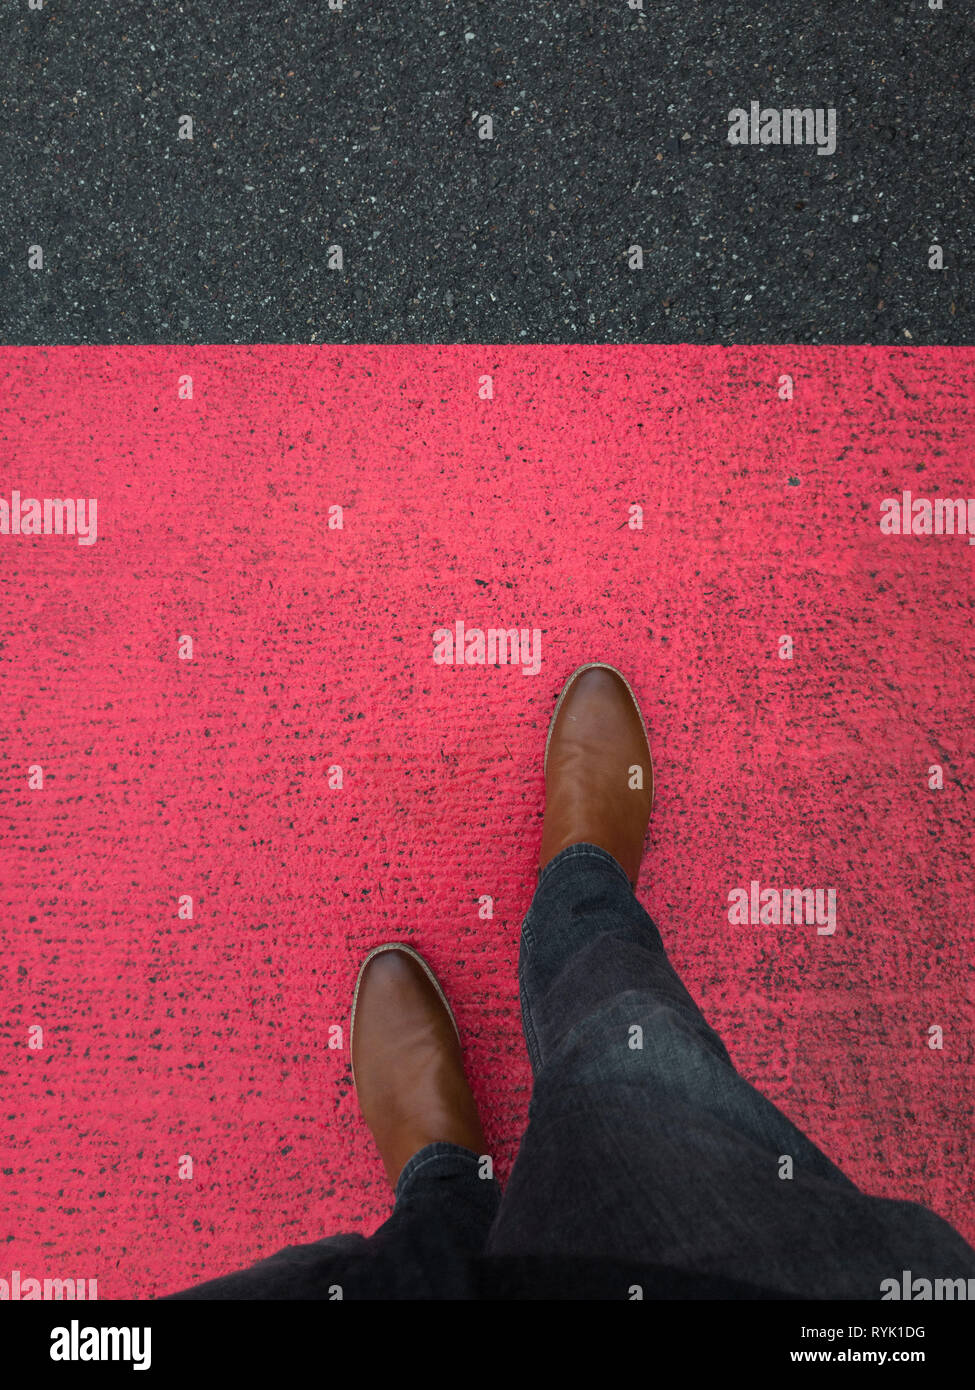 red marking on pavement with leather boot - Stock Image